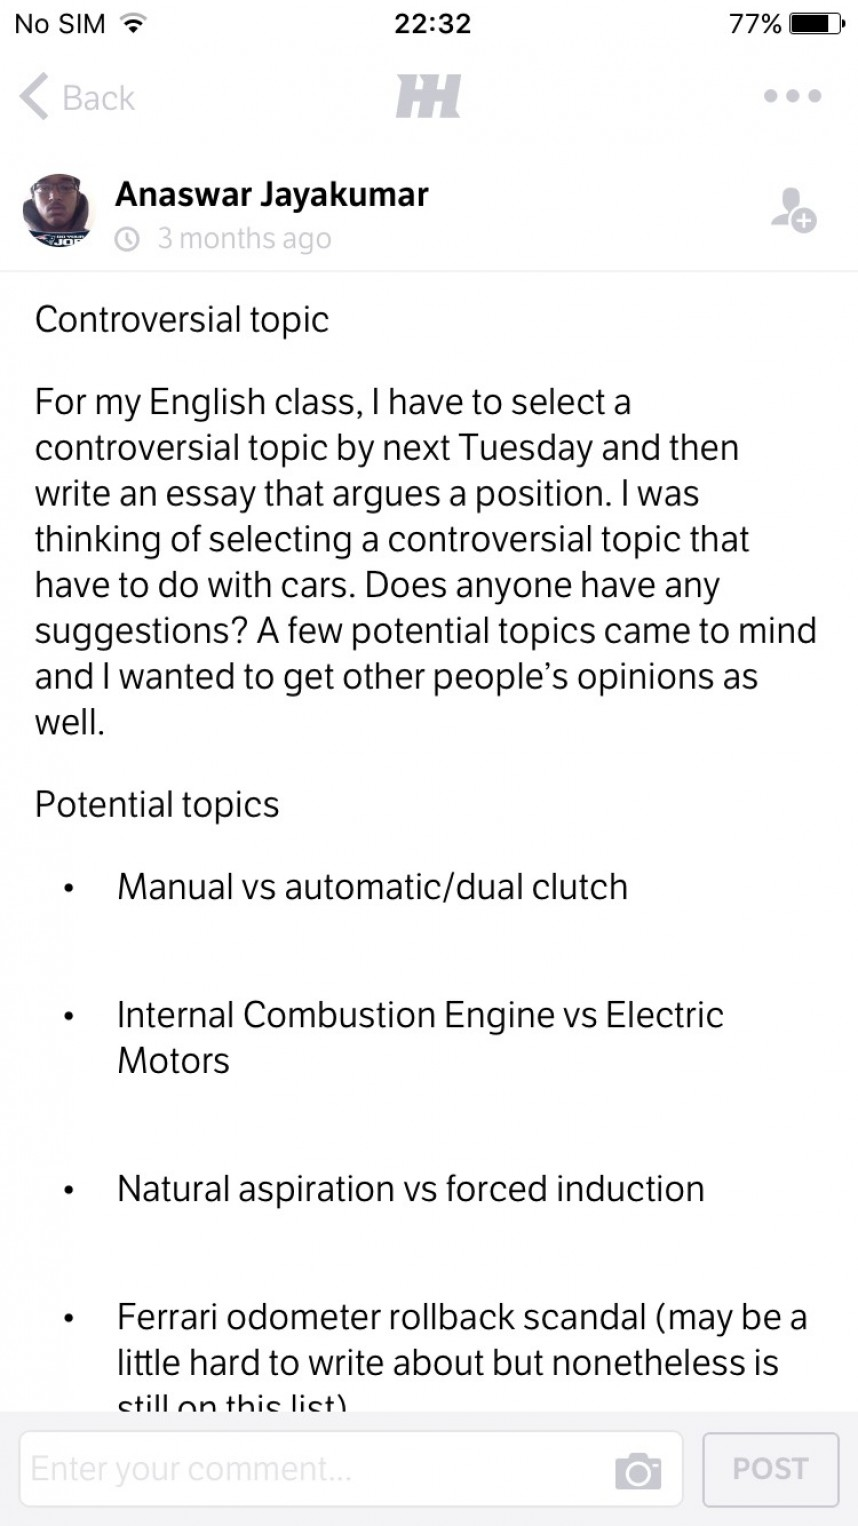 011 Controversial Topic Essay Topics Example Research Paper Outline20 Breathtaking Issue Issues For Papers